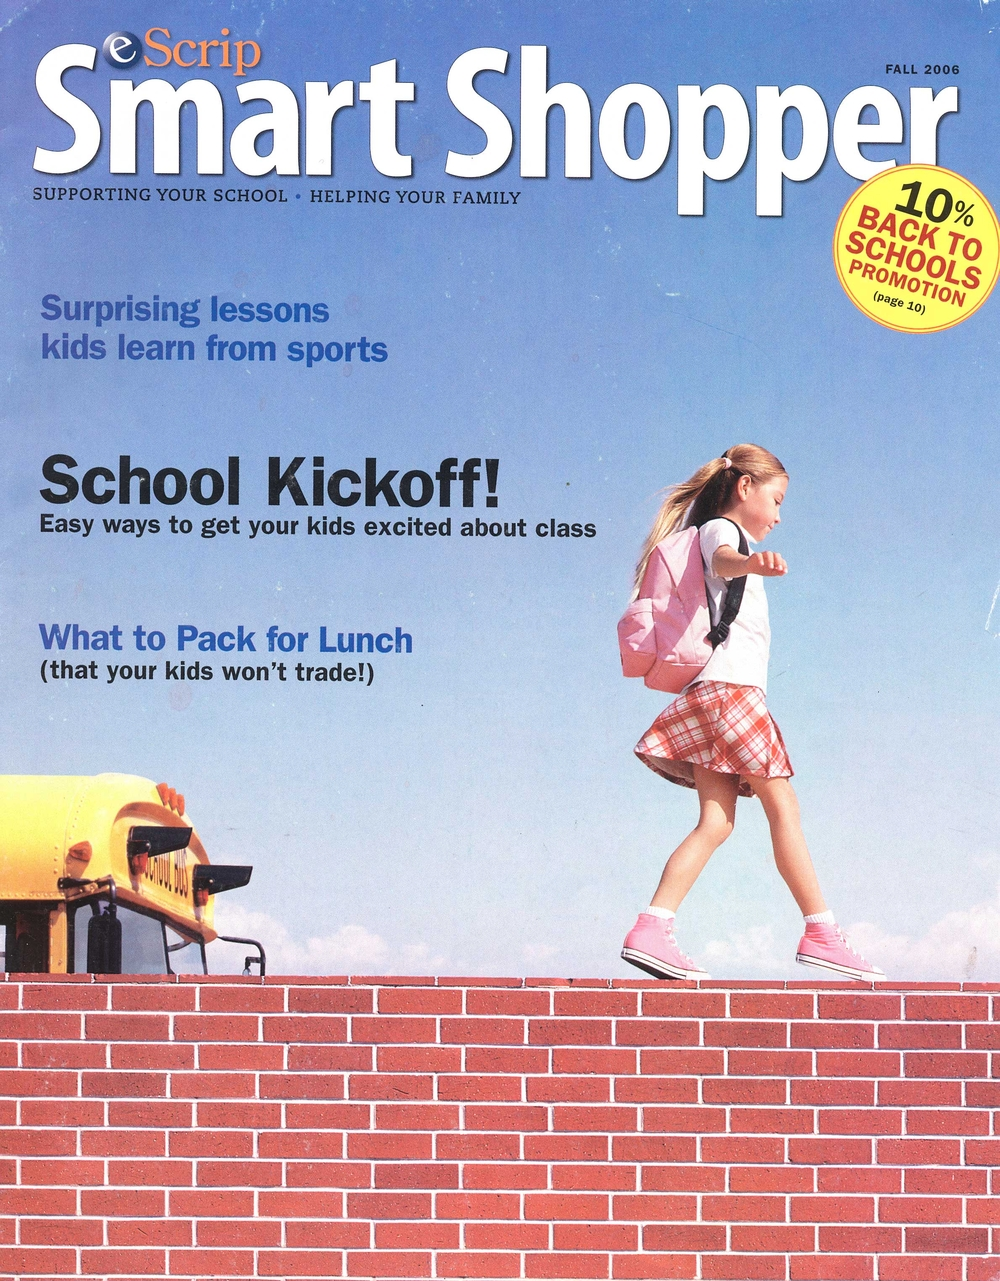 Copy of SmartShopper_Cover.jpg